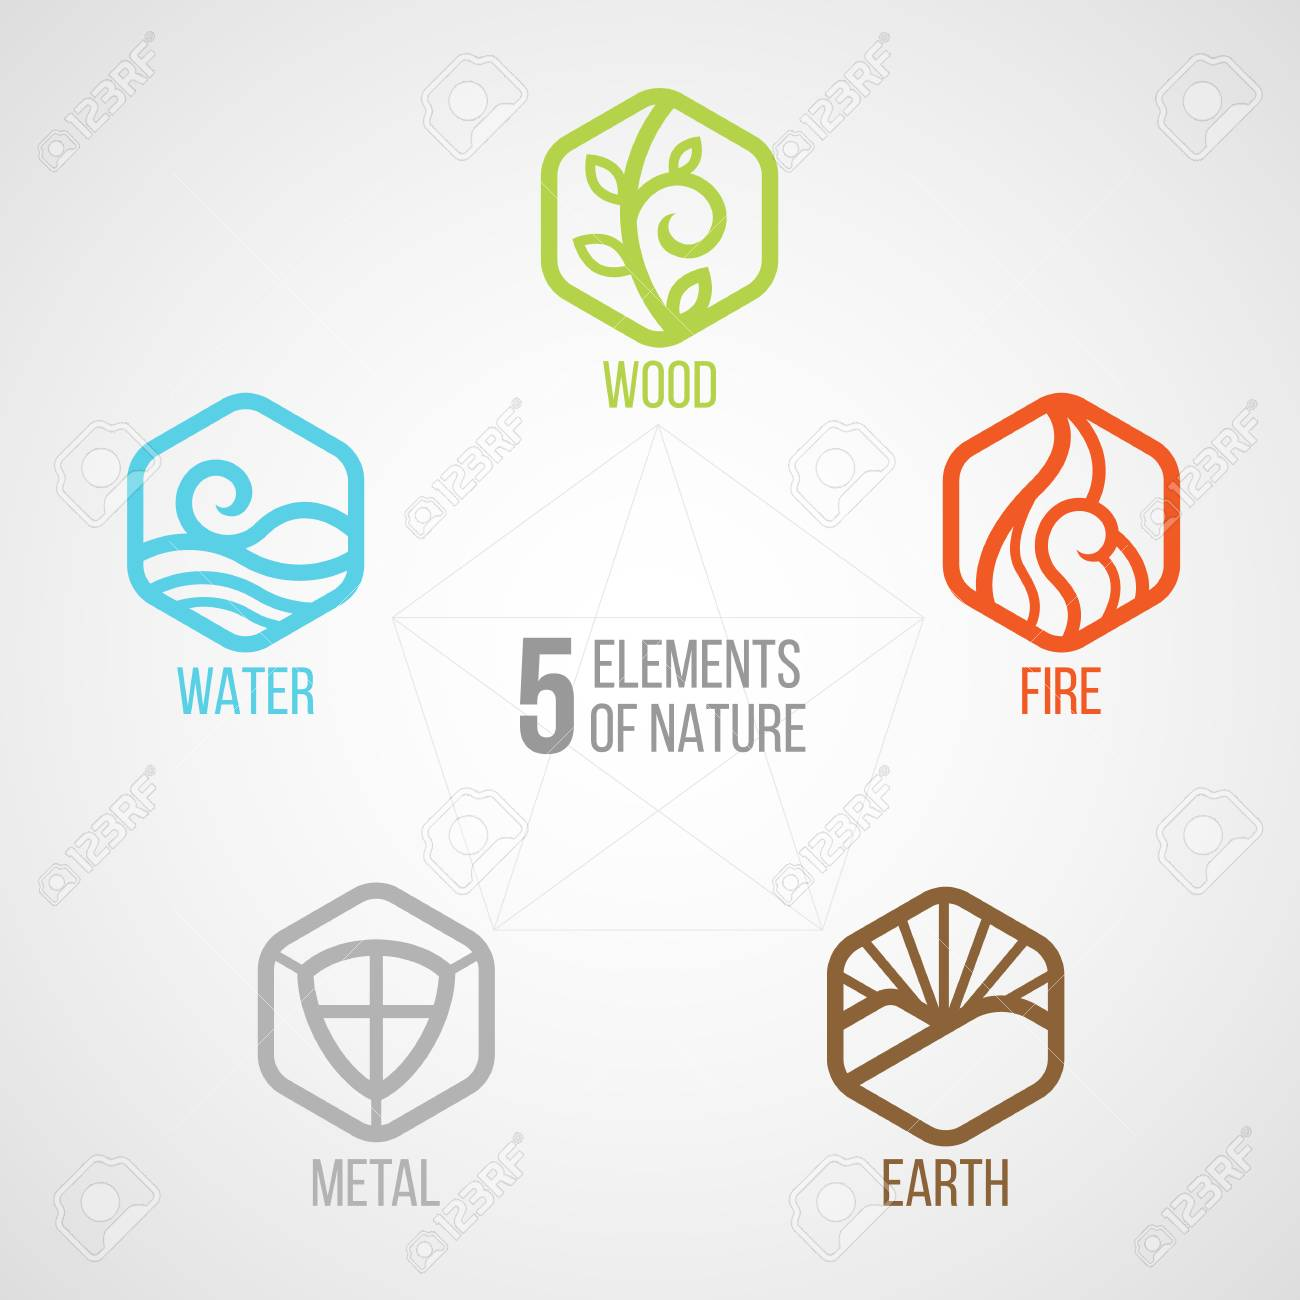 5 elements of nature Hexagon line icon sign. Water, Wood, Fire, Earth, Metal. on dark background. - 89112434